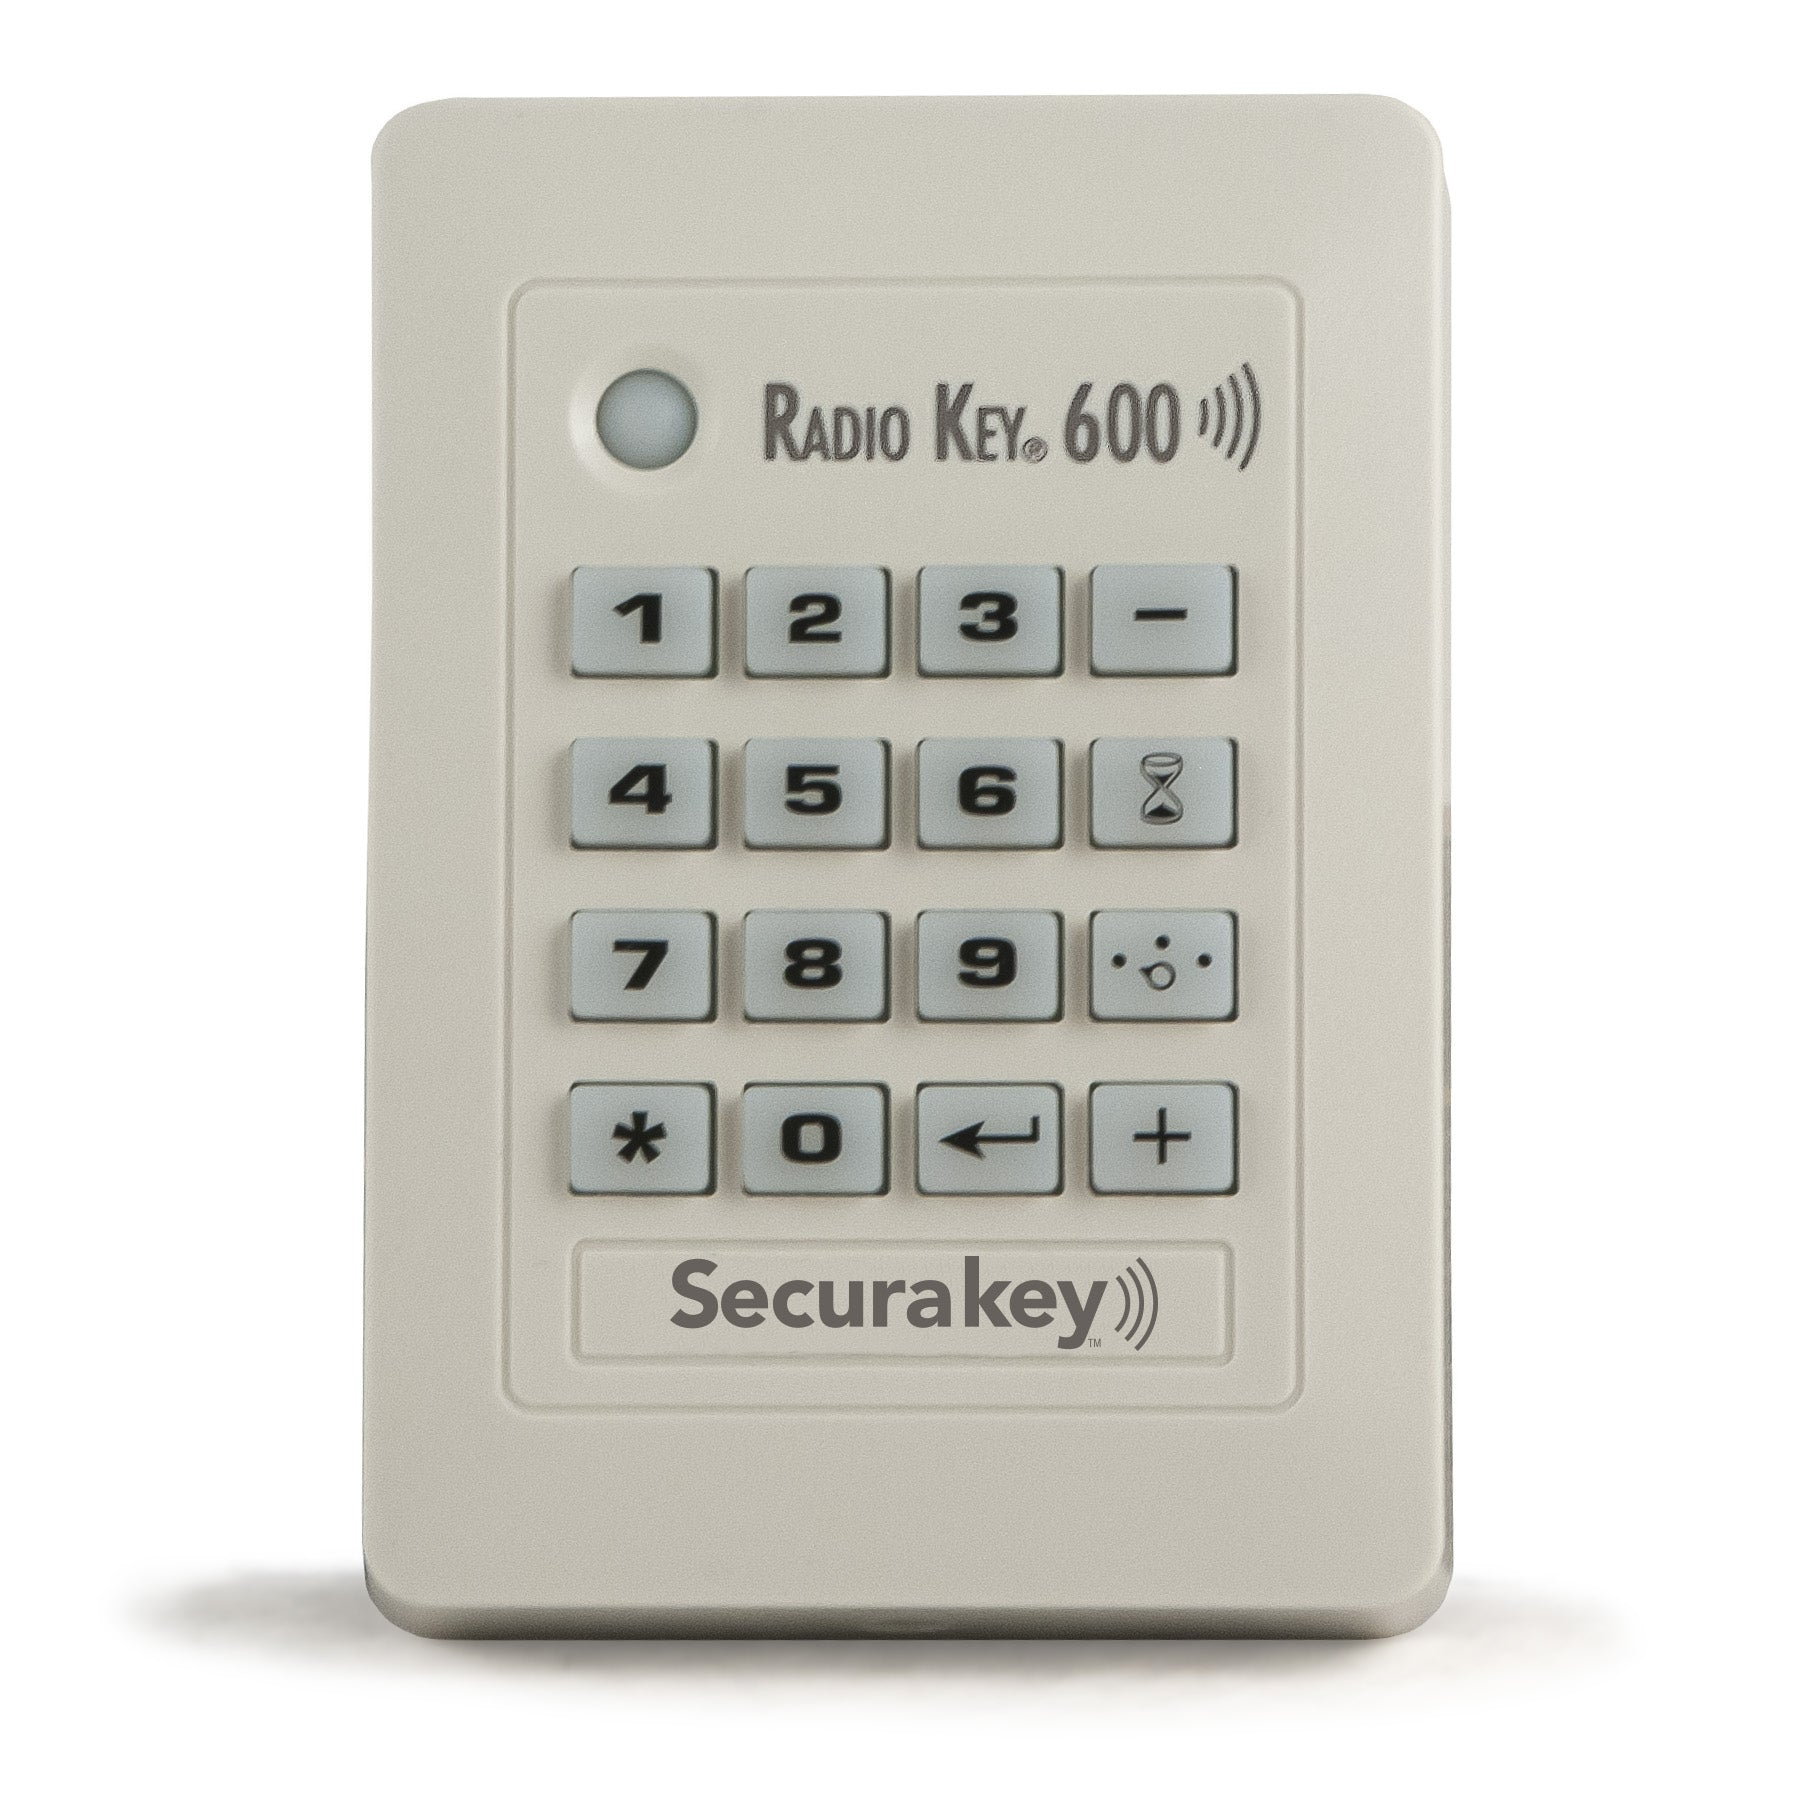 SECURAKEY RK600 STAND ALONE PROXIMITY READER